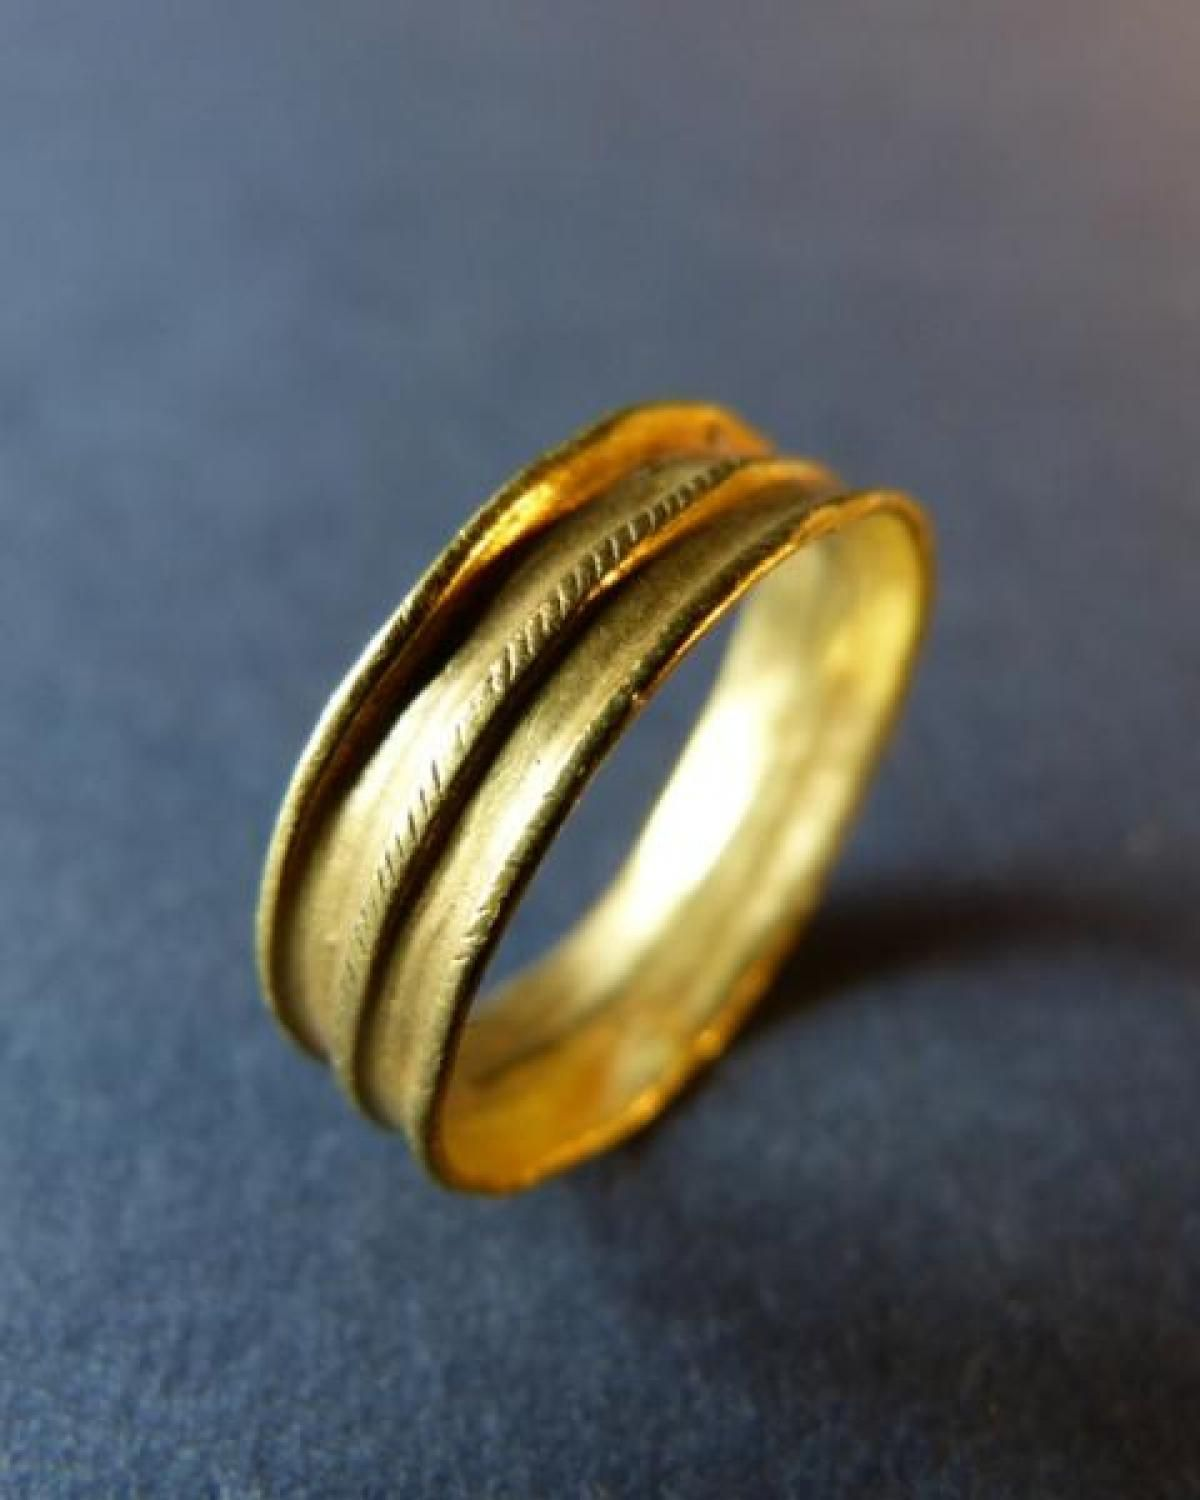 Antique For Sale Ancient Roman Flat Ring In Gold Wedding Jewelry Fashion Clothes Beauty